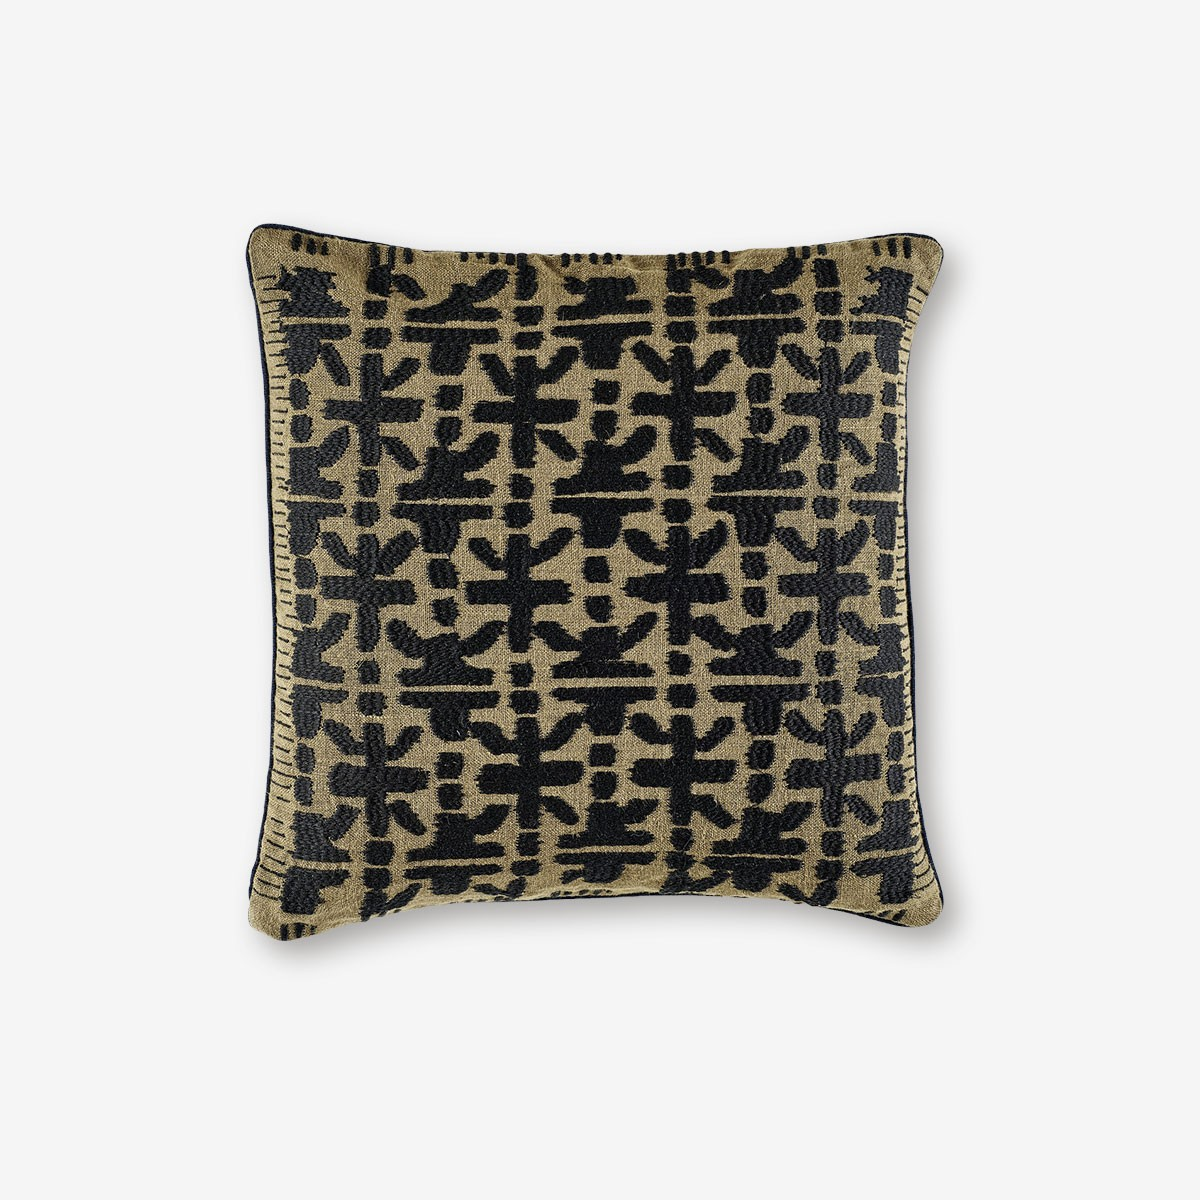 Image shows Crossway cushion in Bronze